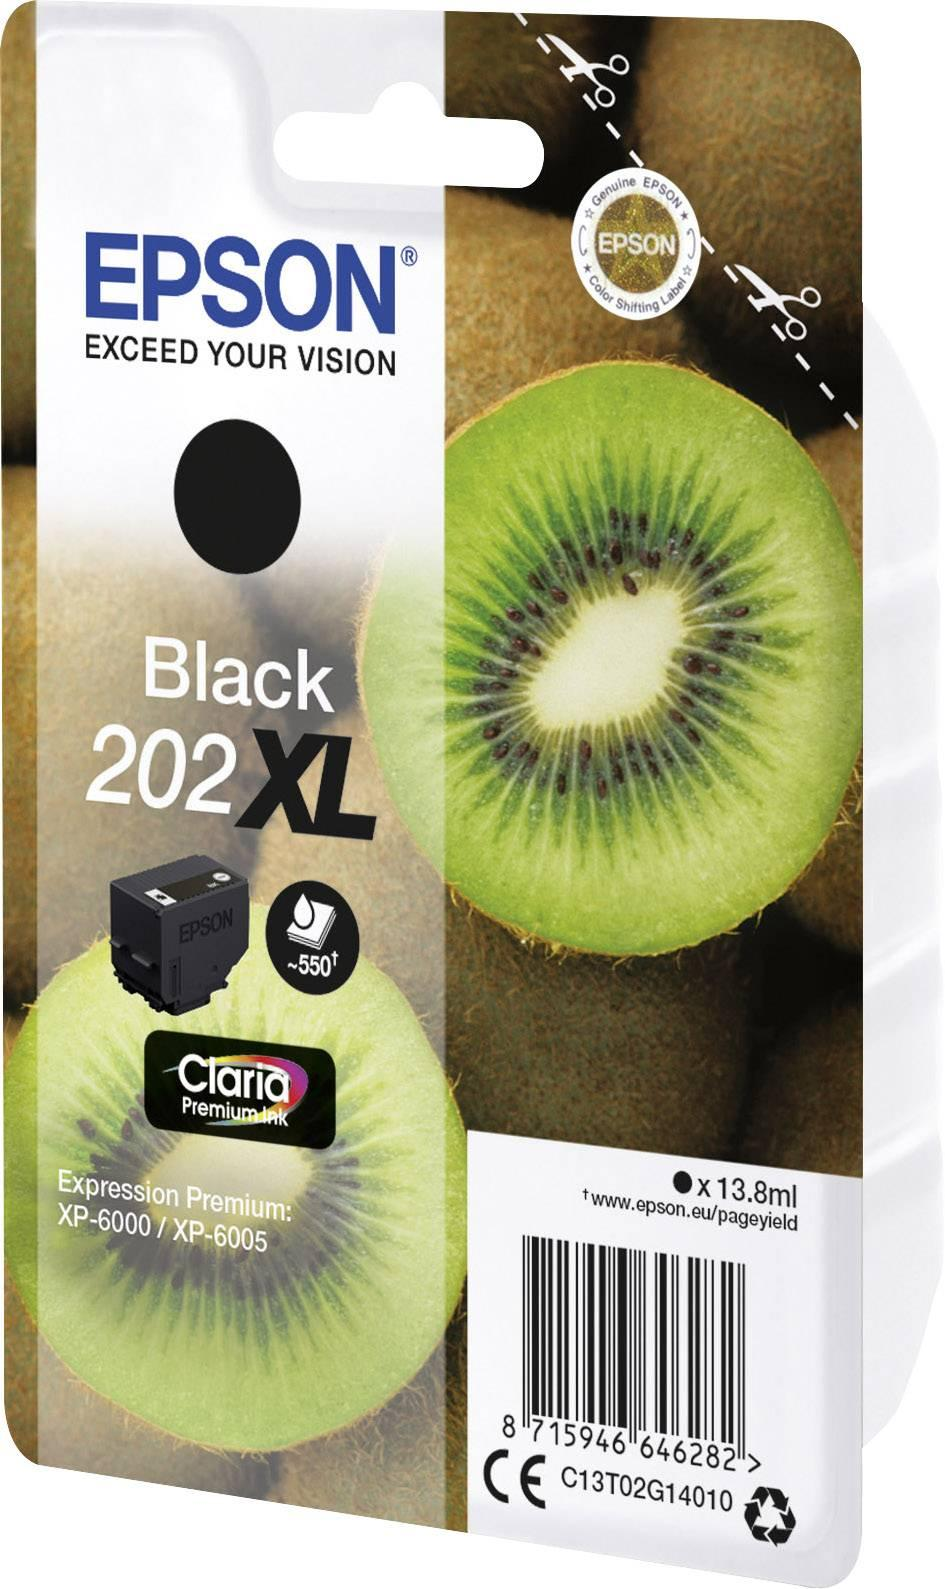 Epson 202xl Original Black Ink Cartridge